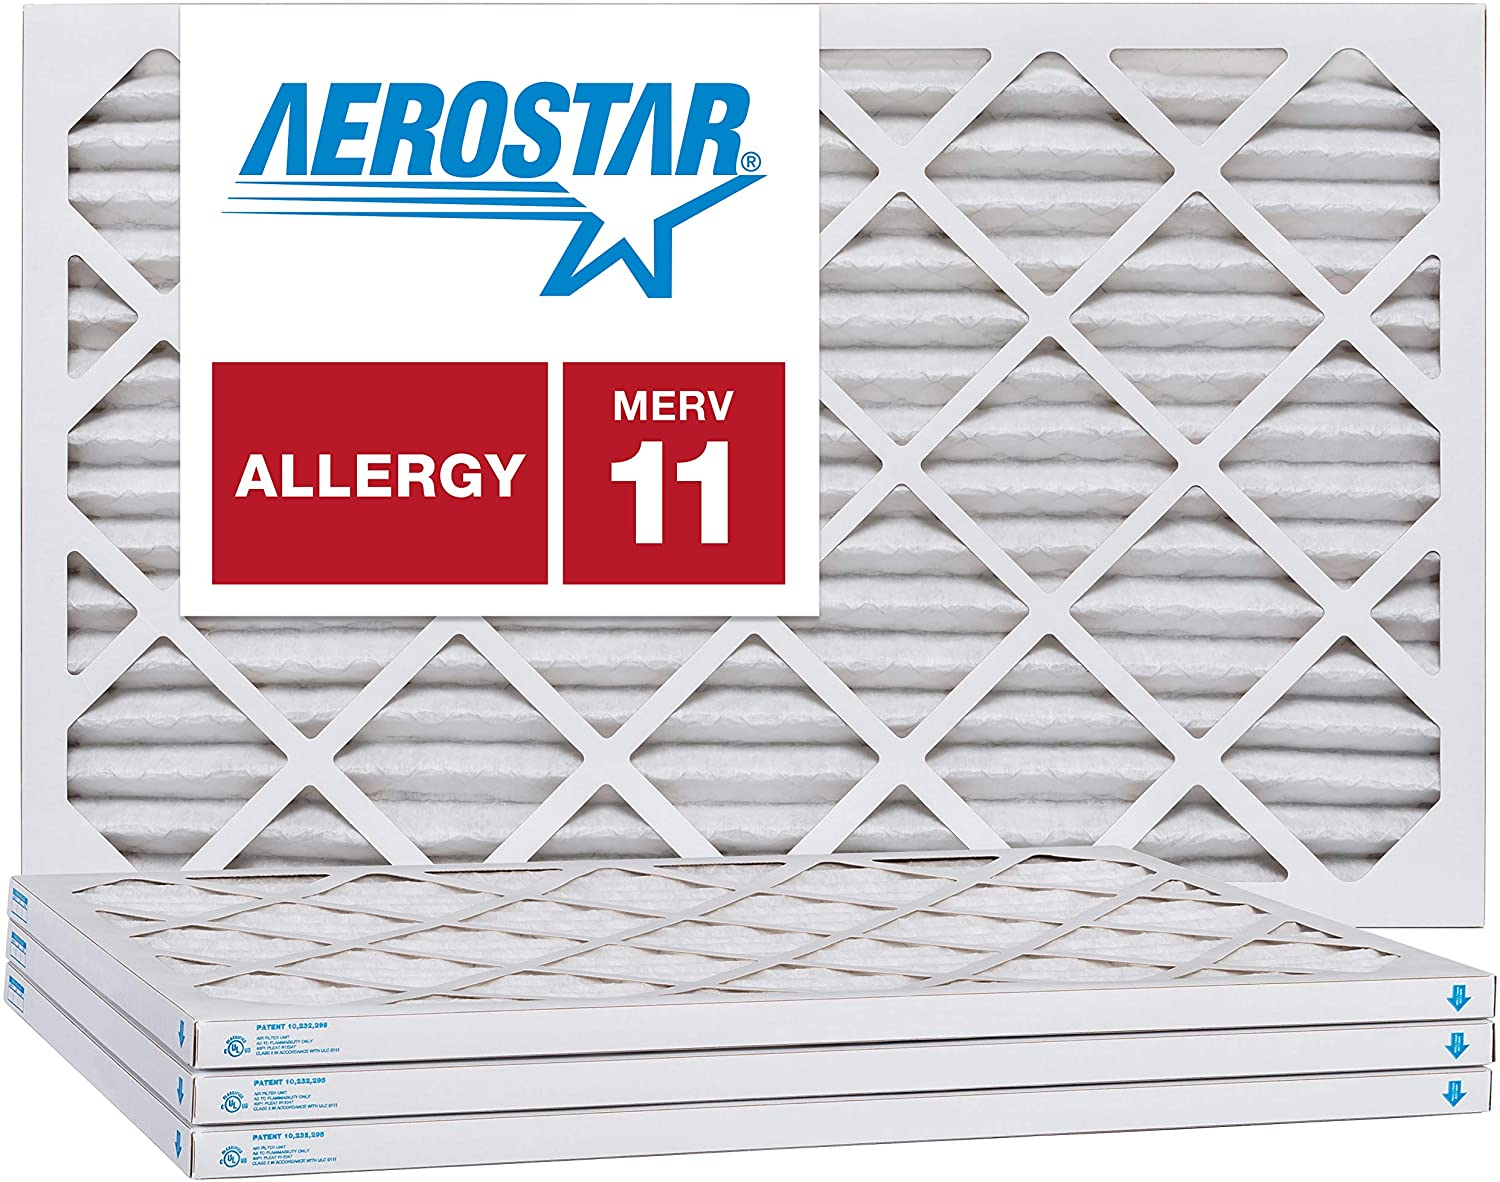 Nordic Pure 19/_1//4x21/_1//4x1 MPR 1000 Pleated Micro Allergen Replacement AC Furnace Air Filters 3 Pack